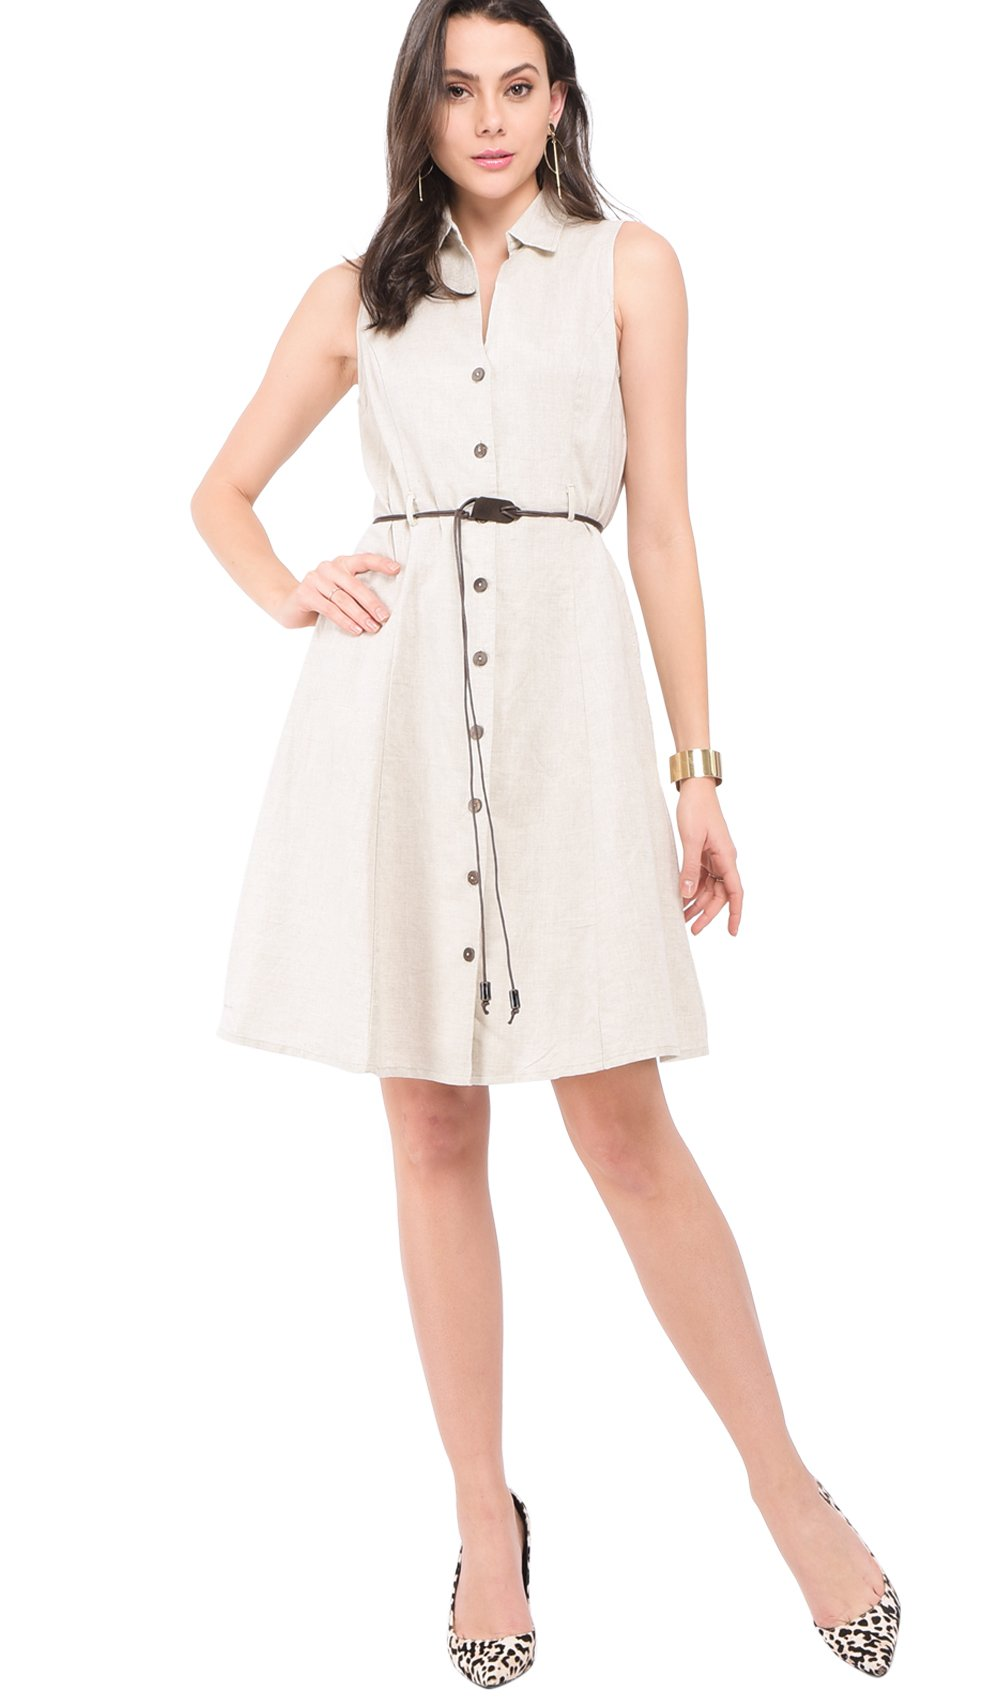 MID-LENGHT BUTTONNED DRESS WITH SHIRT COLLAR AND BELT